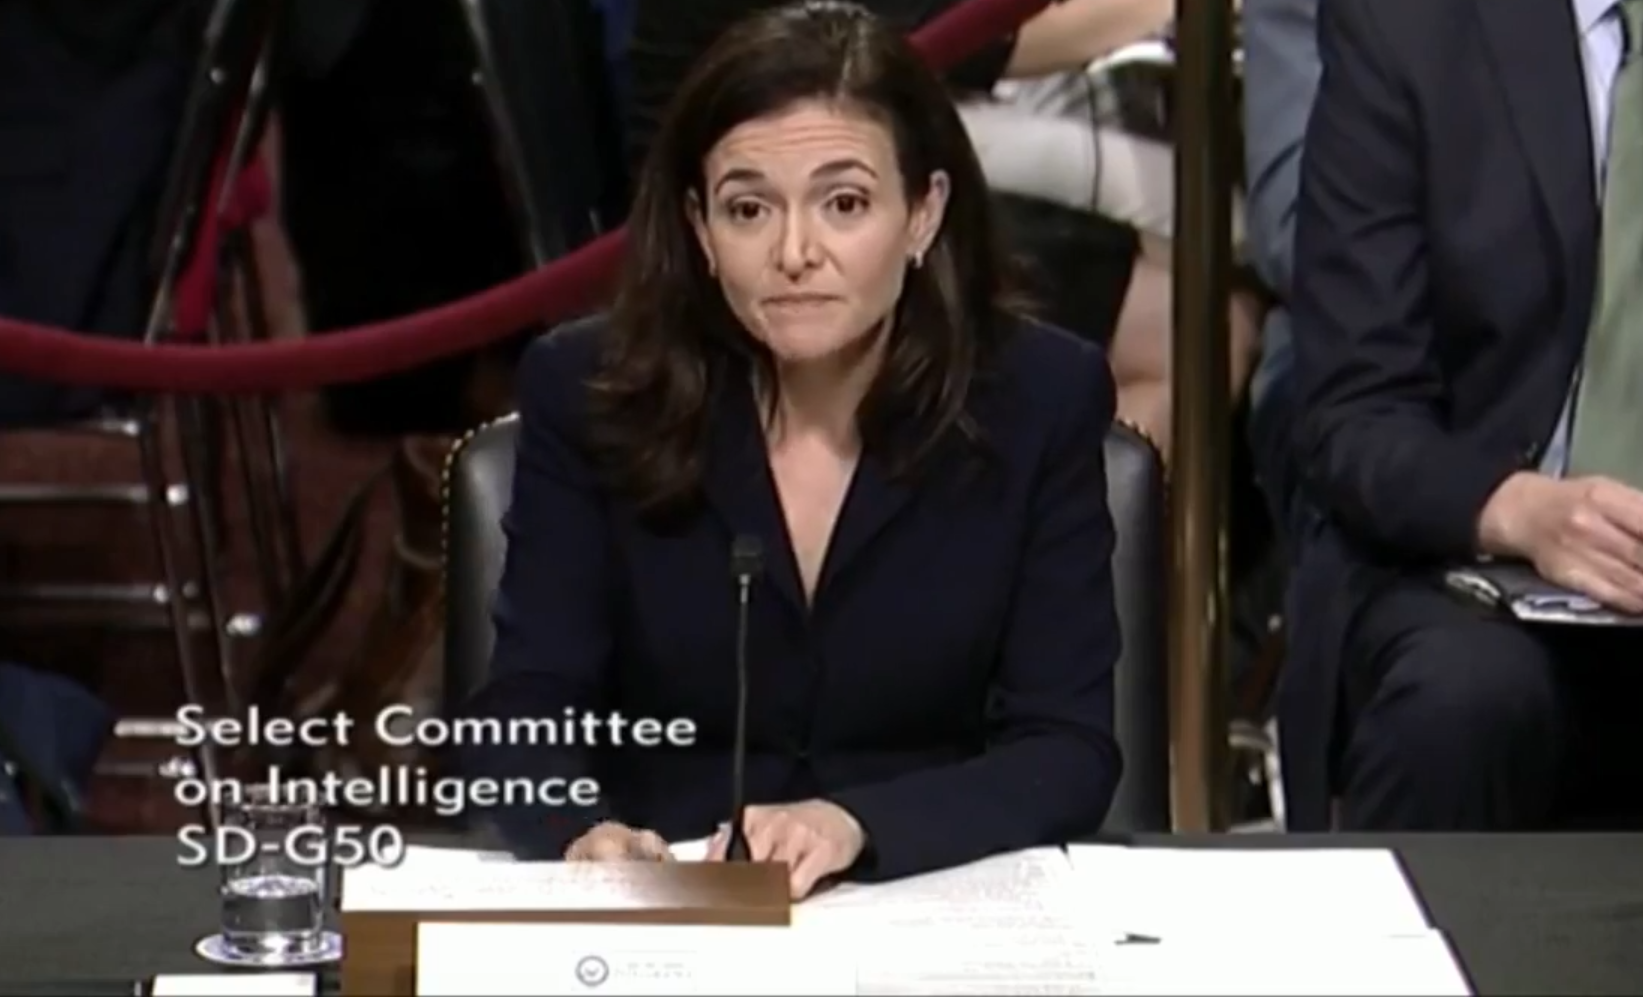 Facebook COO Sheryl Sandberg at the US Senate Intelligence Committee hearing